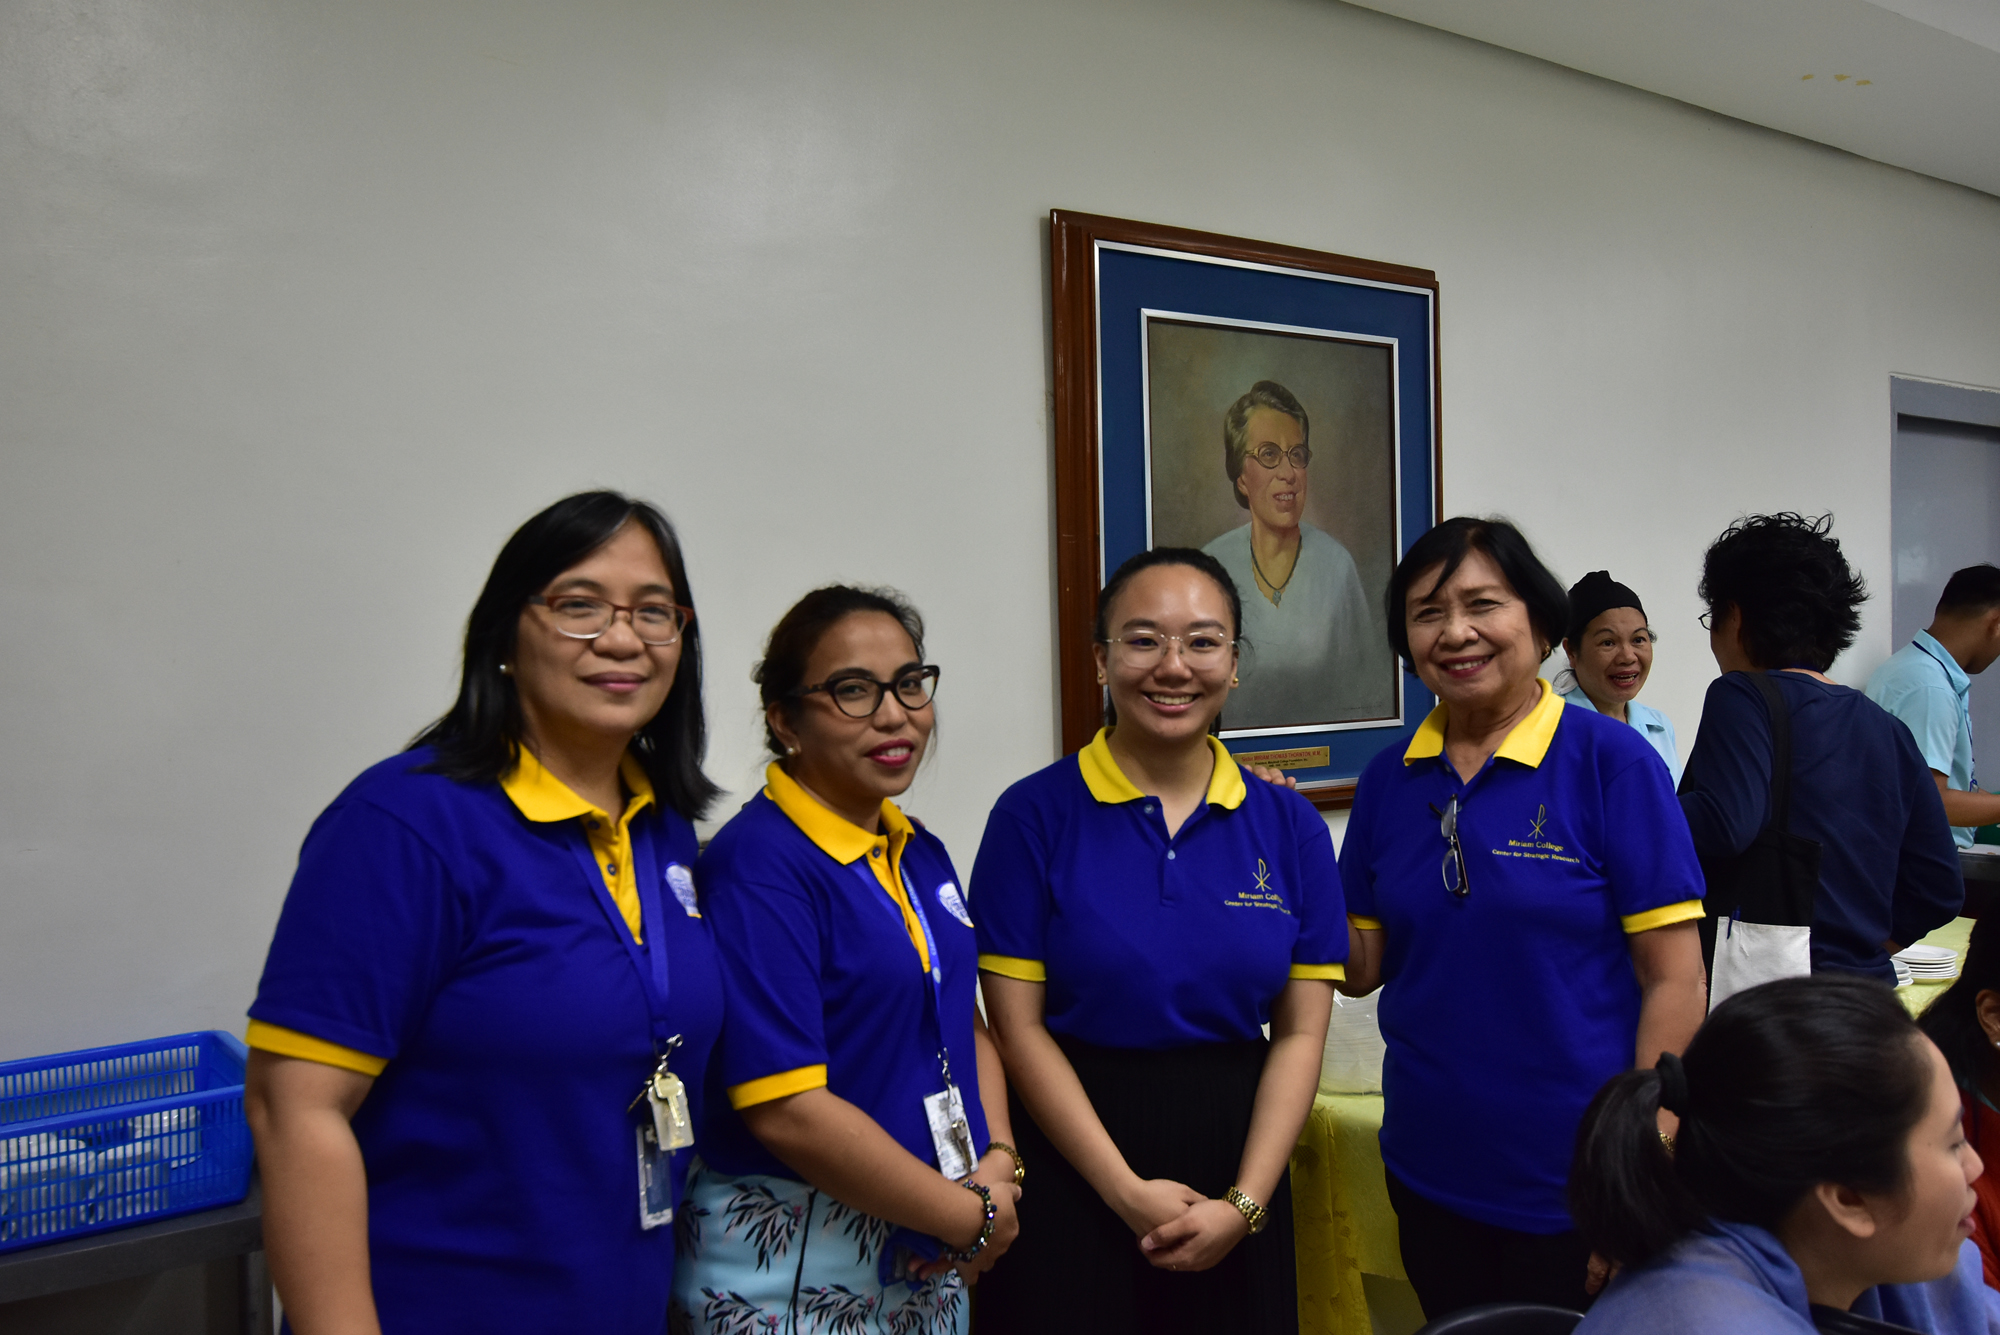 From left ro right: Dr. Carmen V. Penalosa, Executive Director (OIC) of CSR; Ms. Ma. Anna E. Villanueva, Program Coordinator for Research and Publications; Ms. Ysabel R. Padua, Technical Assistant; and Dr. Glenda E. Fortez, former Miriam College Vice President